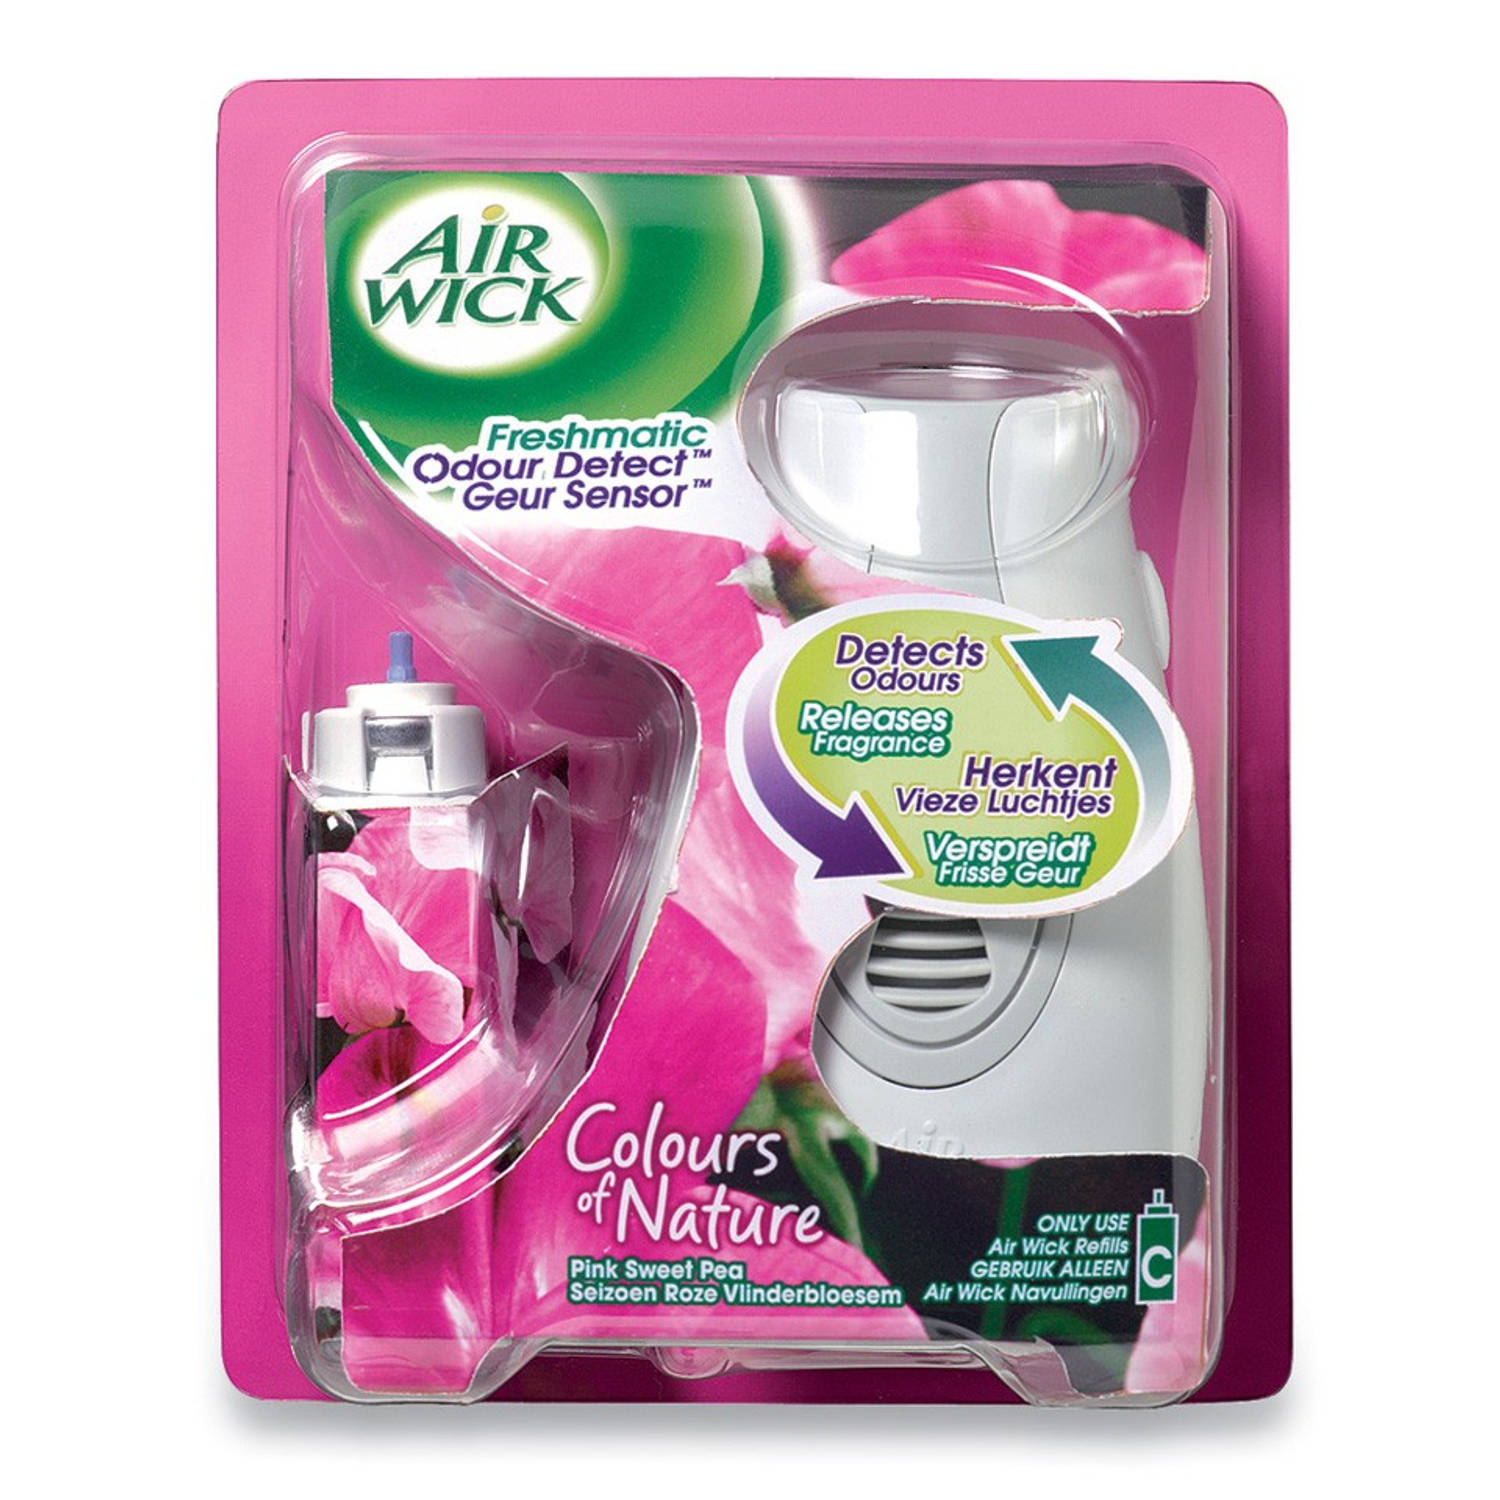 Air Wick Freshmatic Compact Refill : Airwick freshmatic compact pink sweet luchtverfrisser